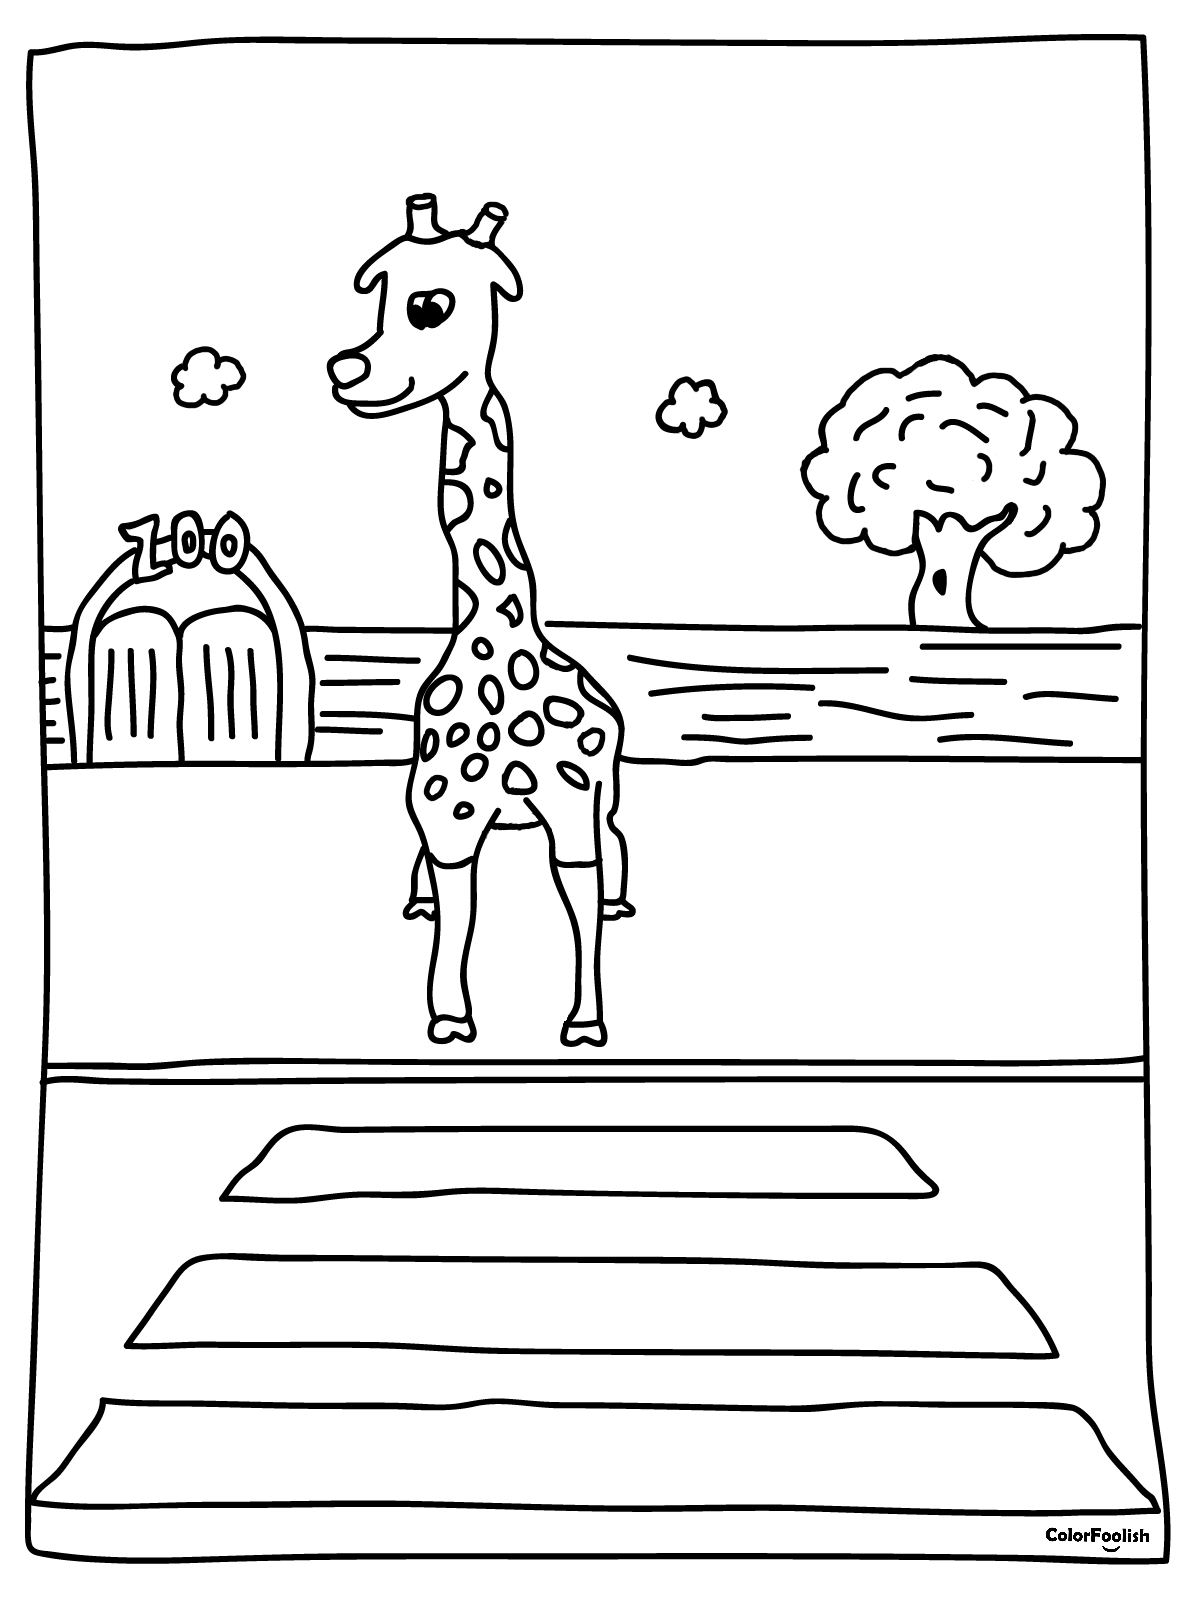 Coloring page of a giraffe crossing the street